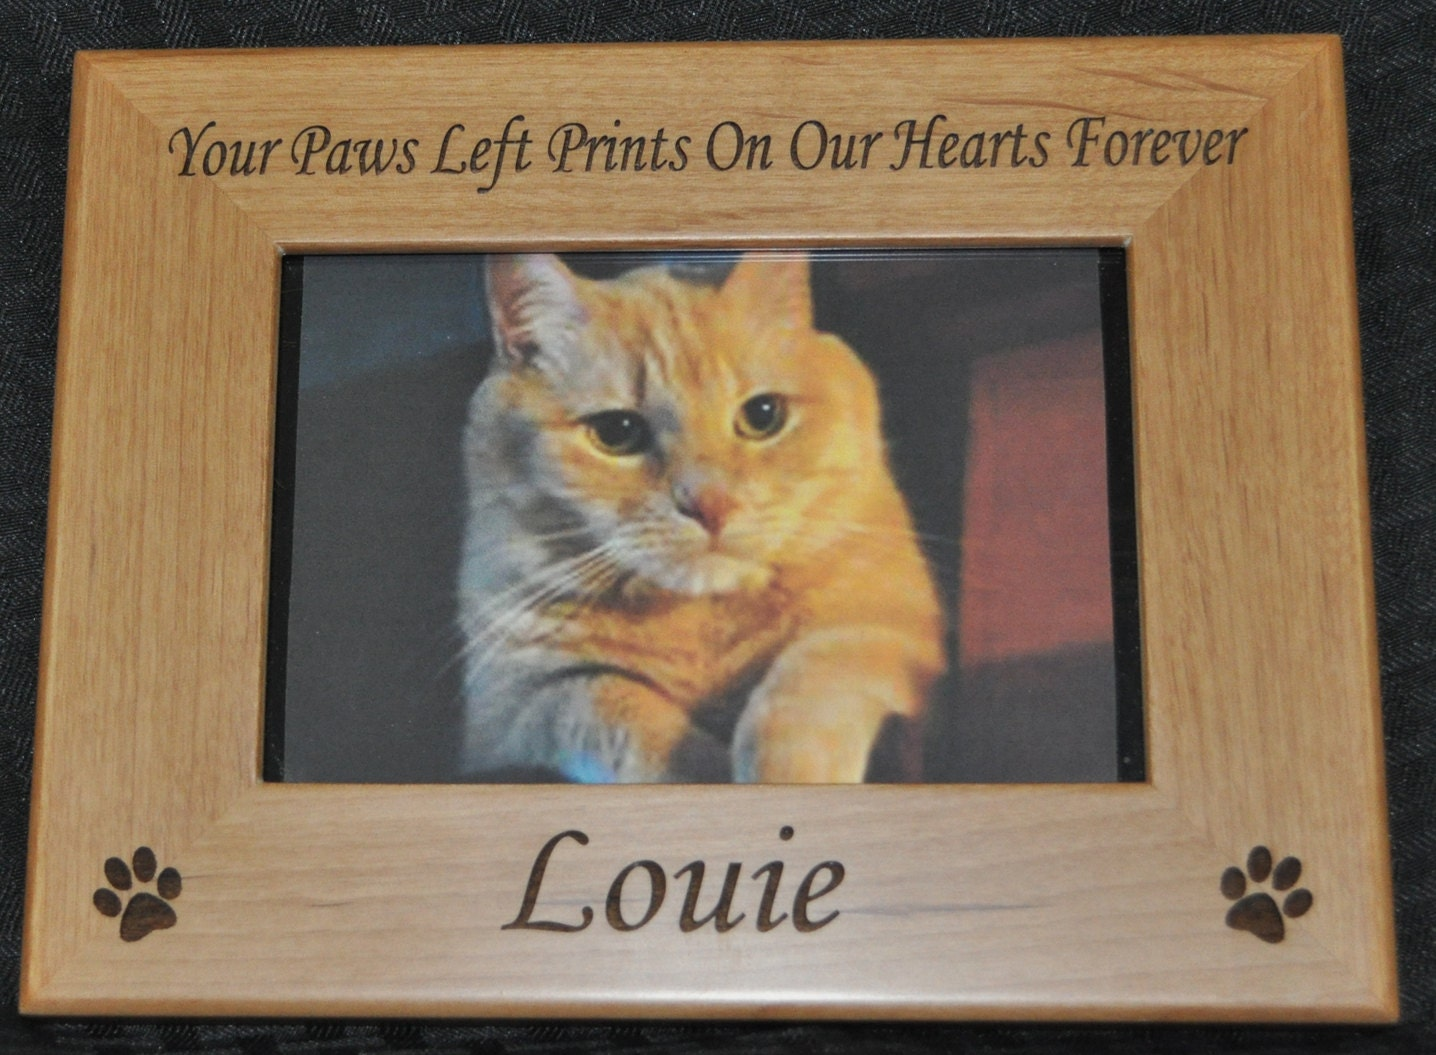 Scrapbook ideas for dogs - Pet Loss Gift Pet Frame Pet Loss Frame Cat Frame Loss Of Cat Cat Loss Gift Friend Loss Of Pet Dog Frame Sympathy Of Pet